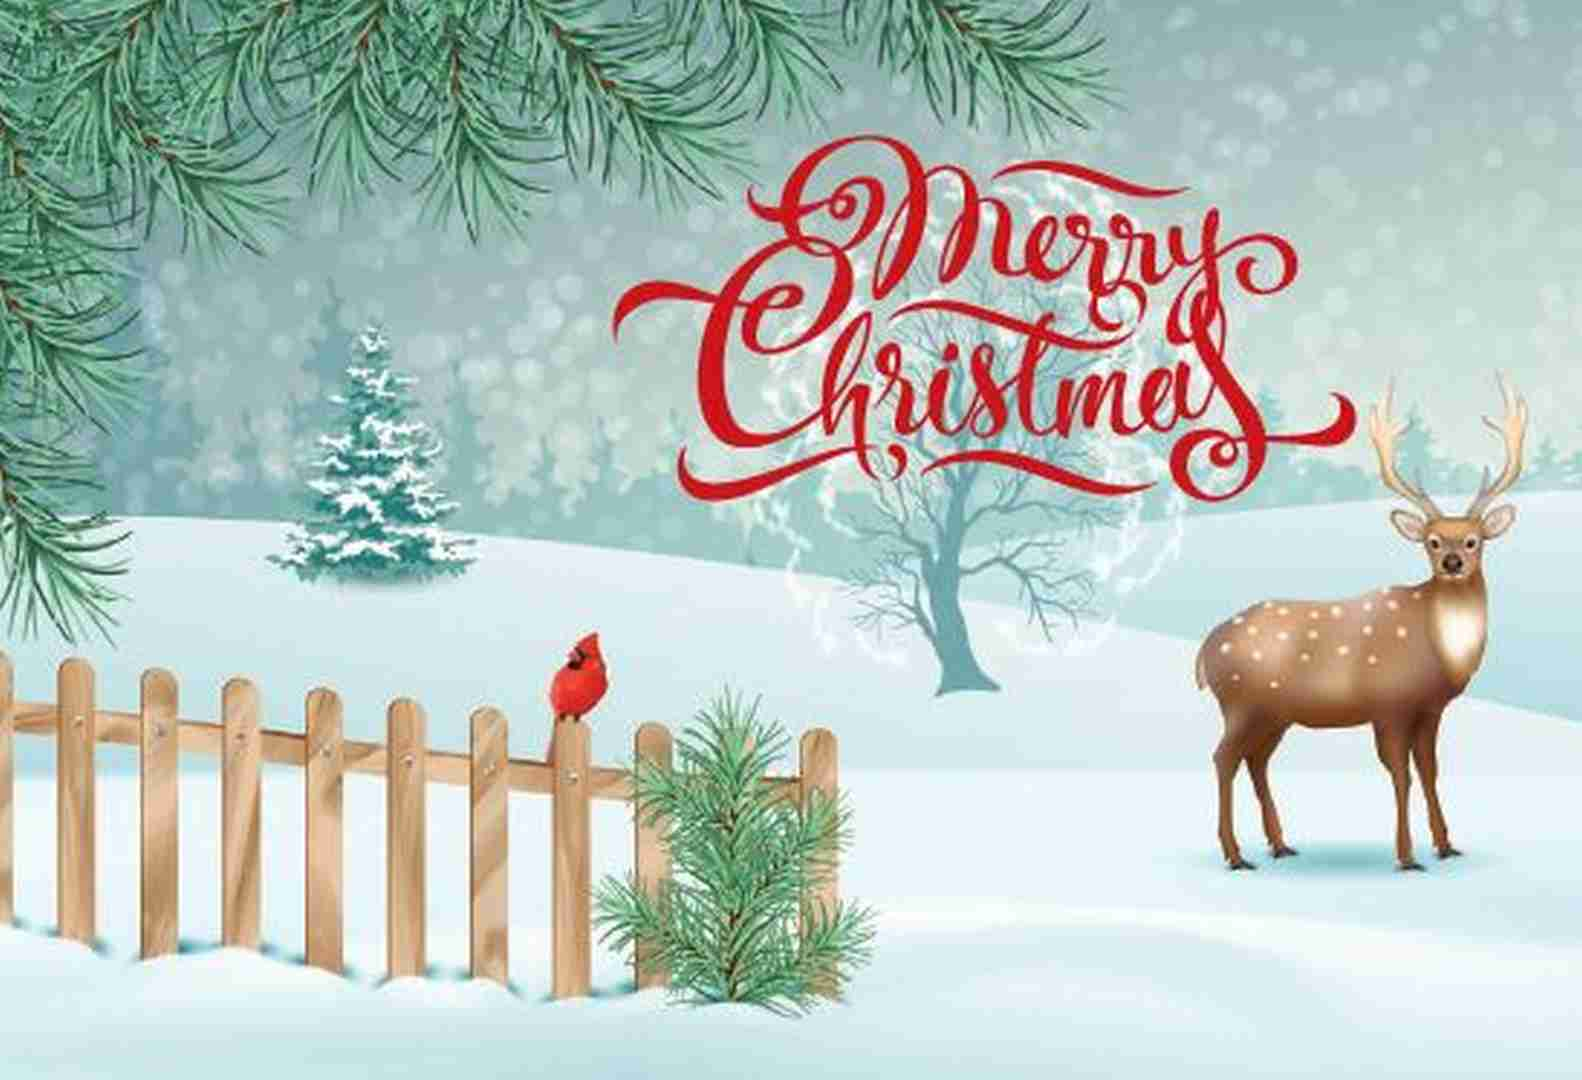 Wholesale Christmas Cards